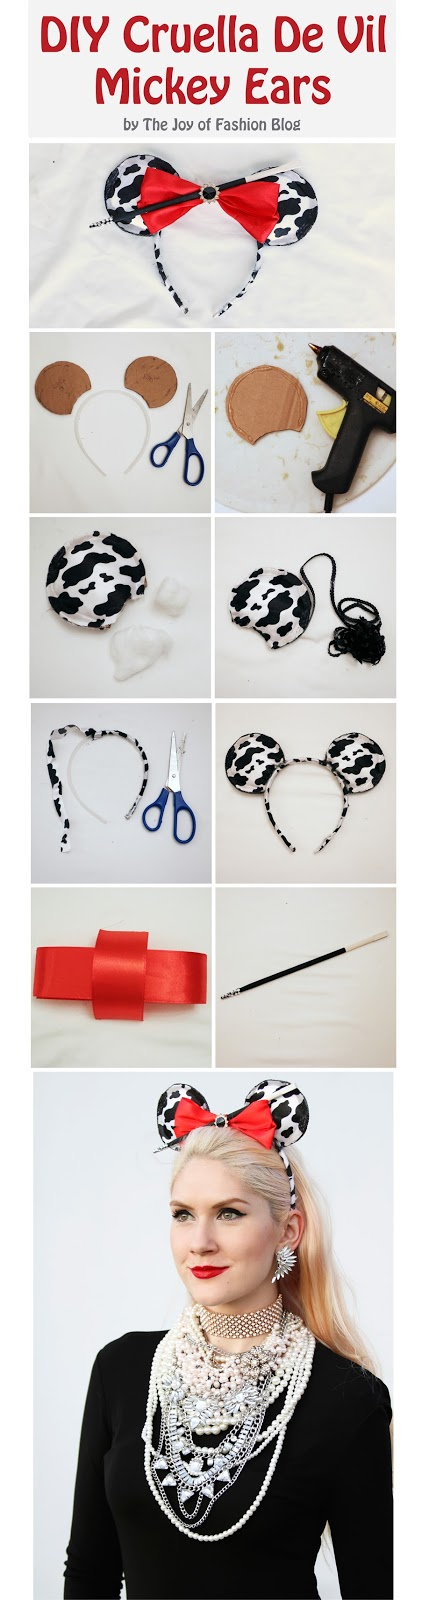 Click through to see the full tutorial on these Cruella De Vil inspired Mickey Ears!